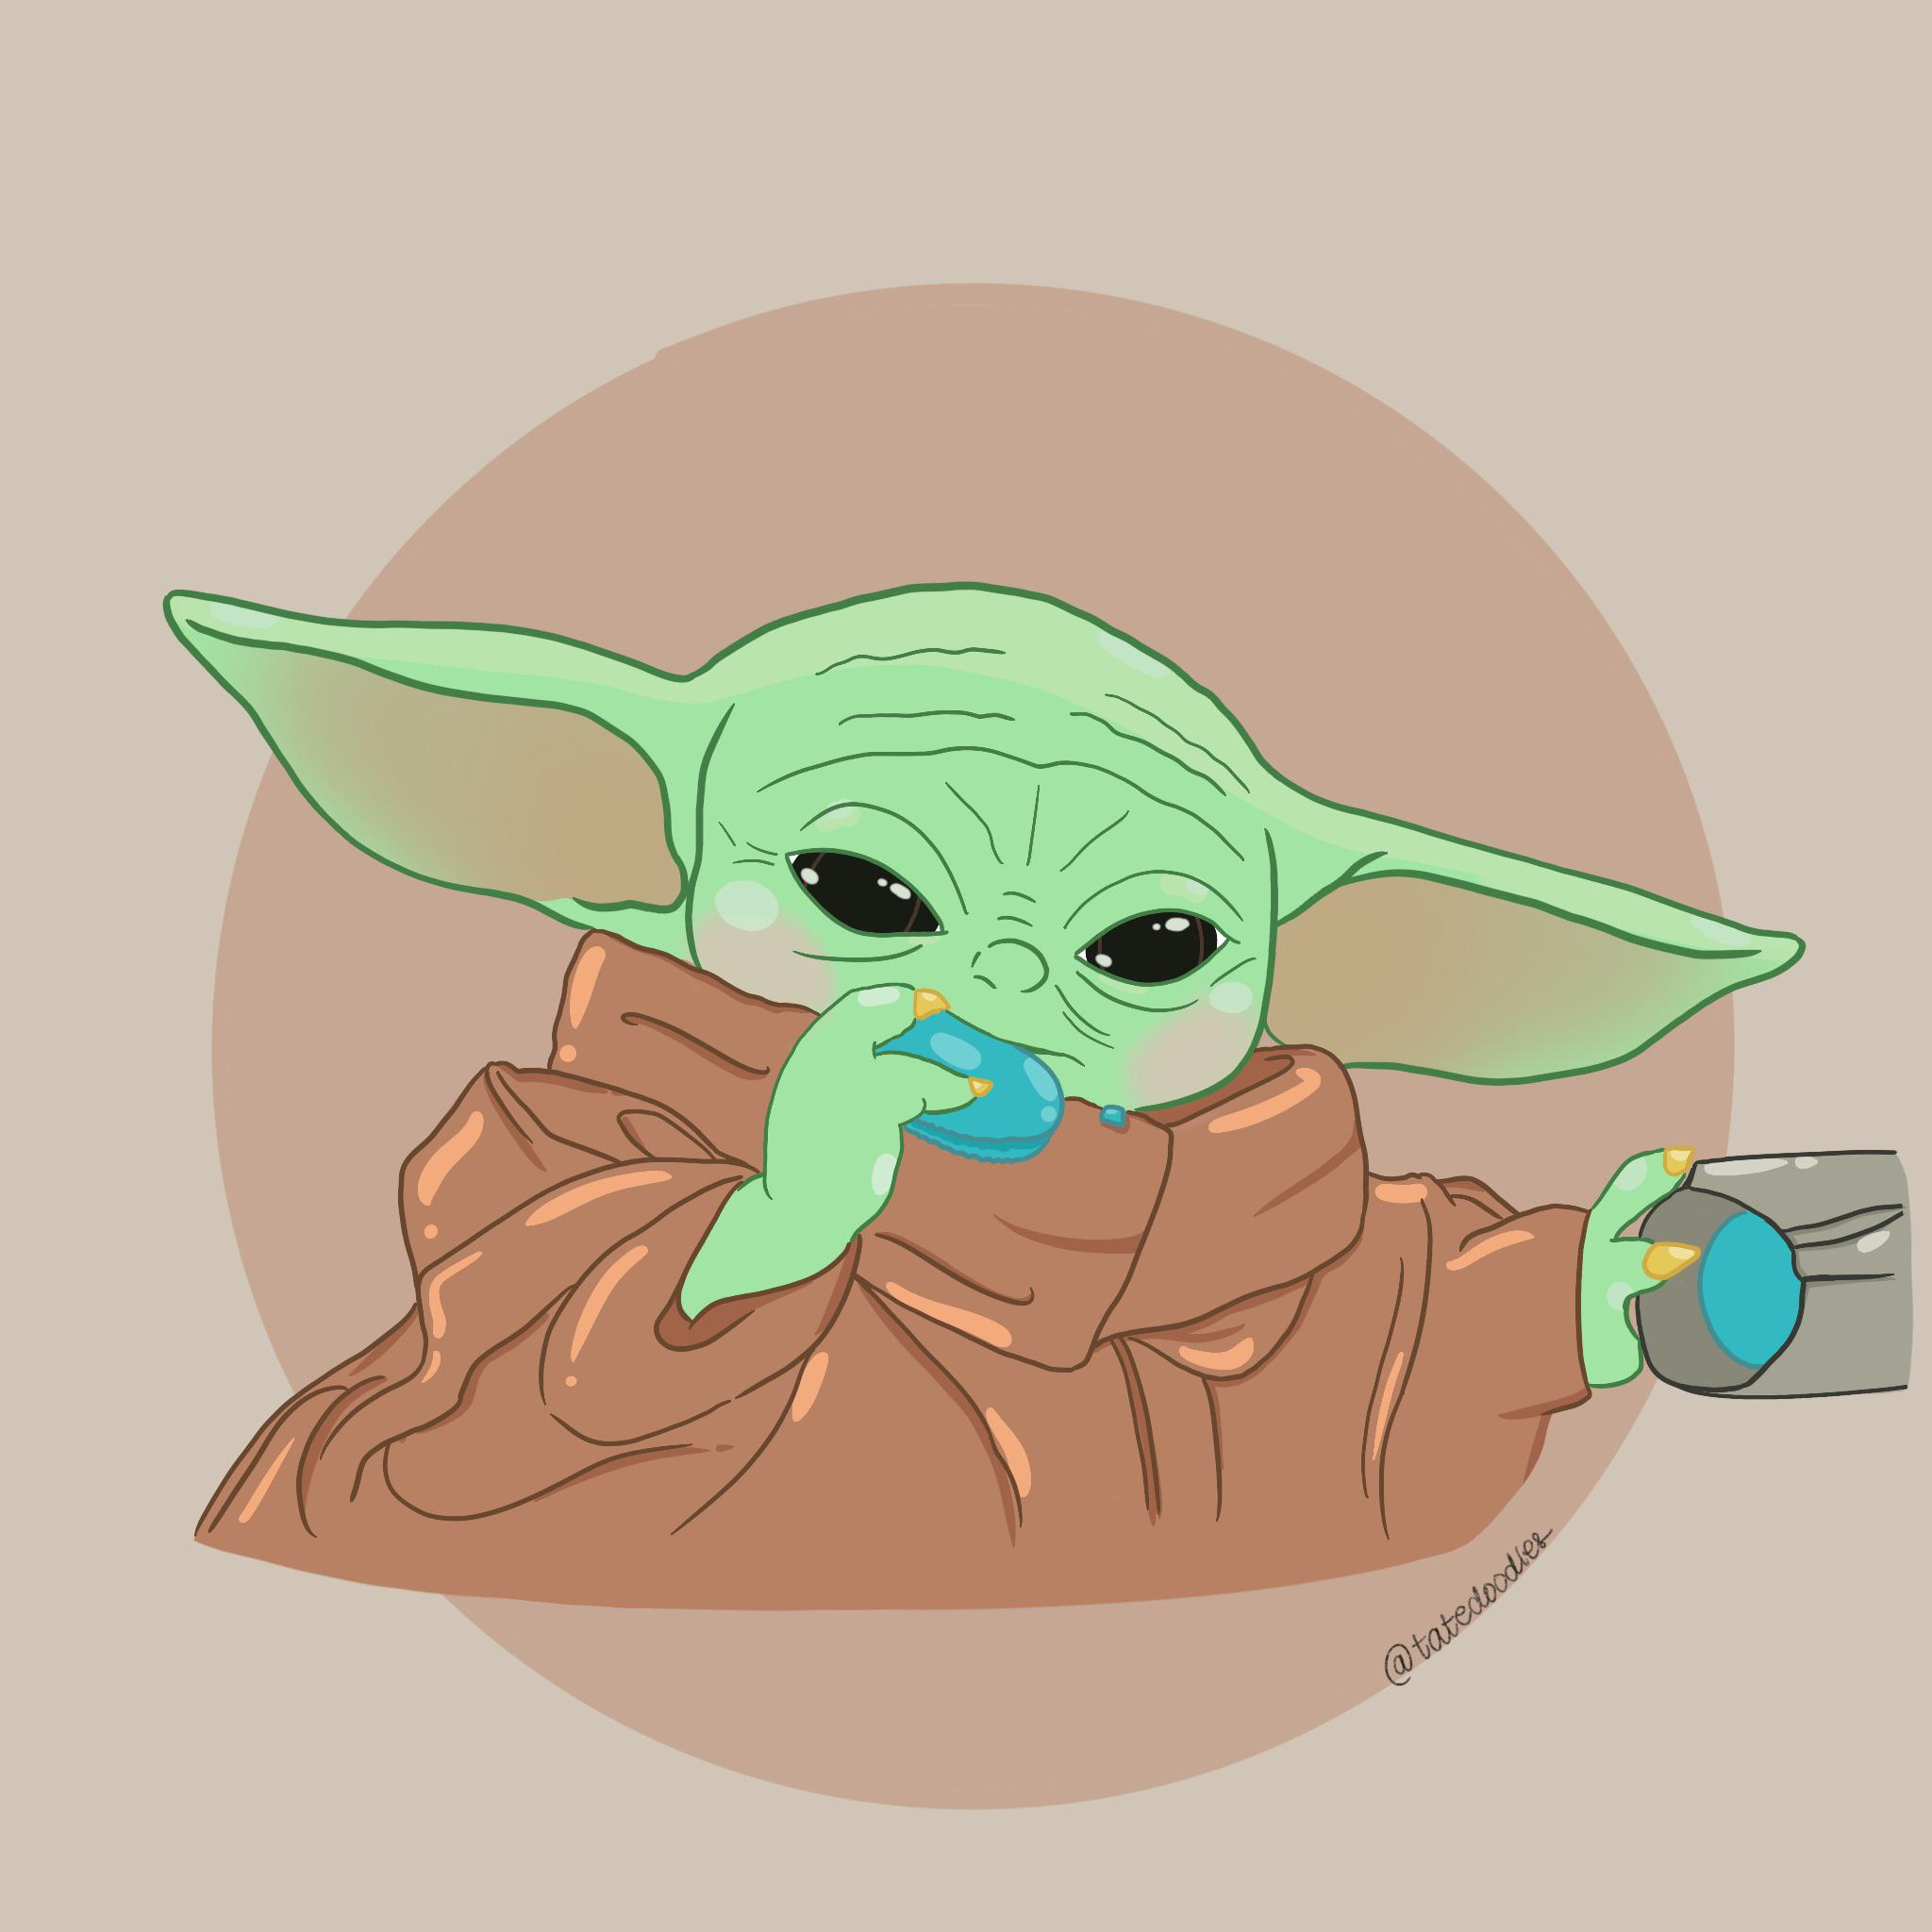 The Cutest Cookie Thief In The Galaxy R Babyyoda Baby Yoda Grogu Know Your Meme He is a toddler member of the same unnamed alien species as the star wars characters yoda and yaddle. baby yoda grogu